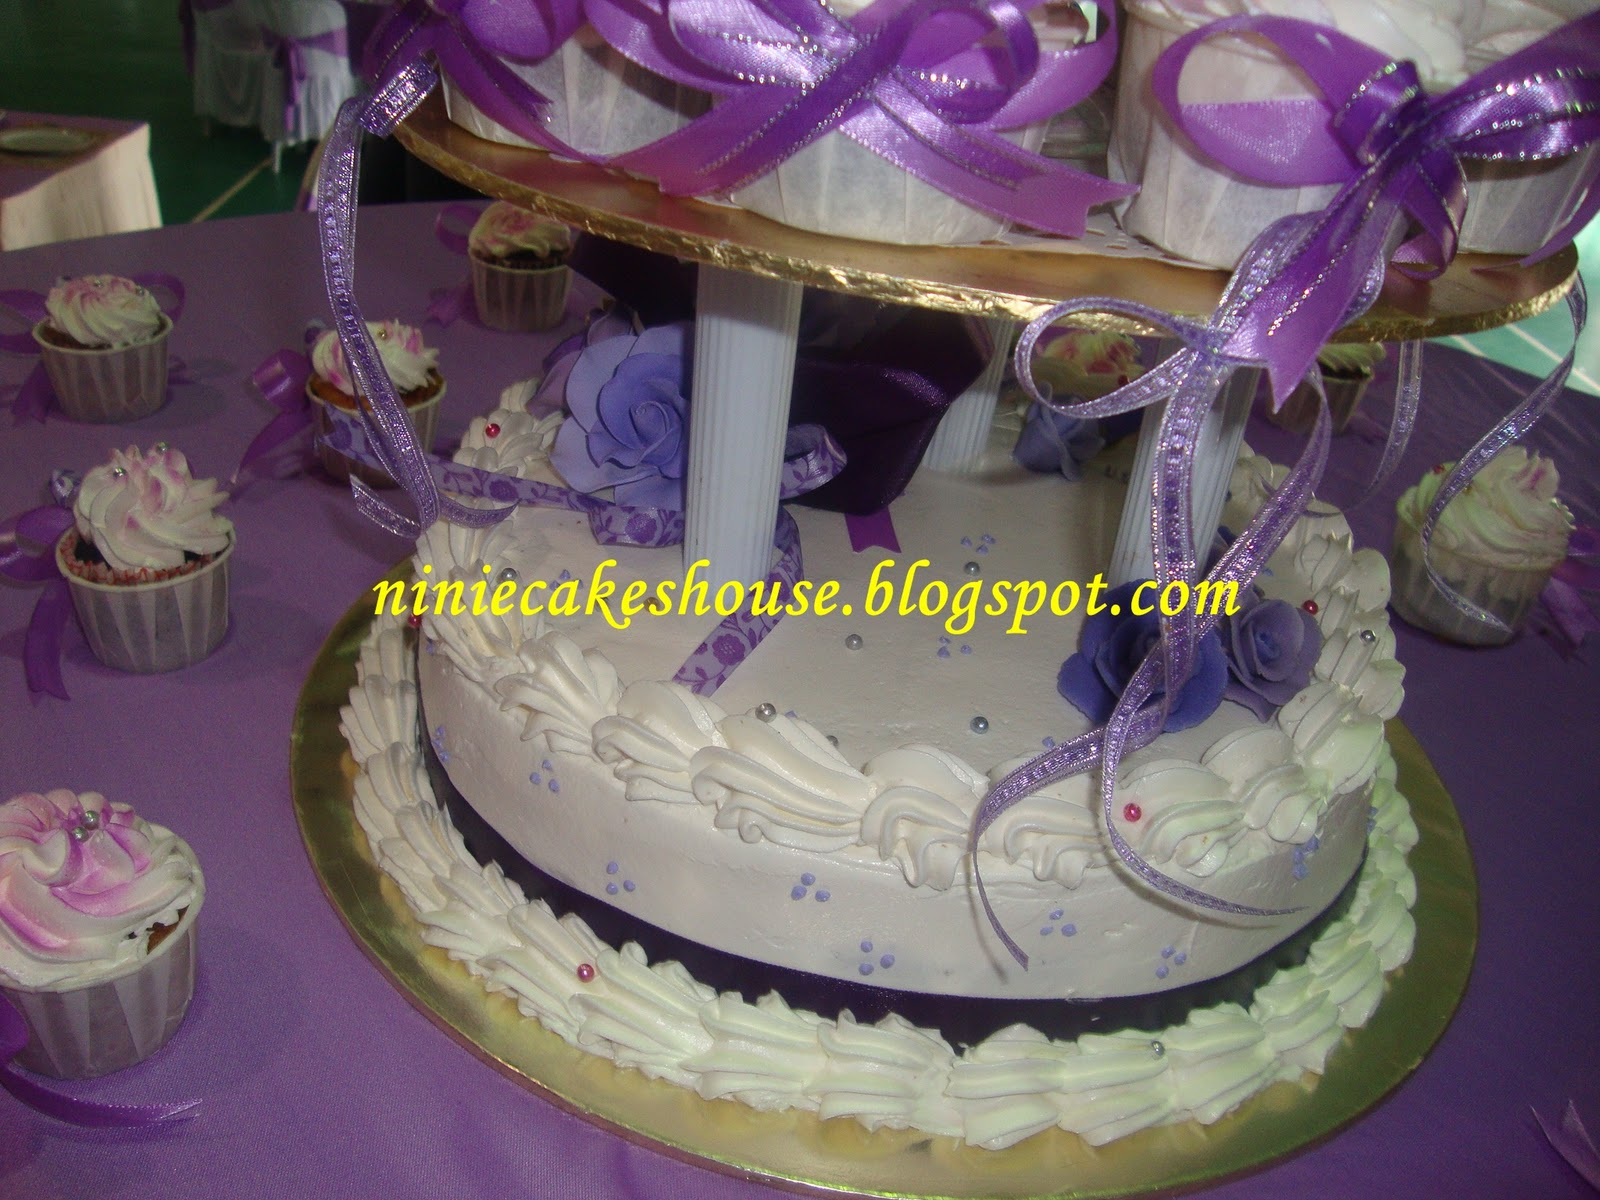 3 Tier Wedding cakes-Purple n